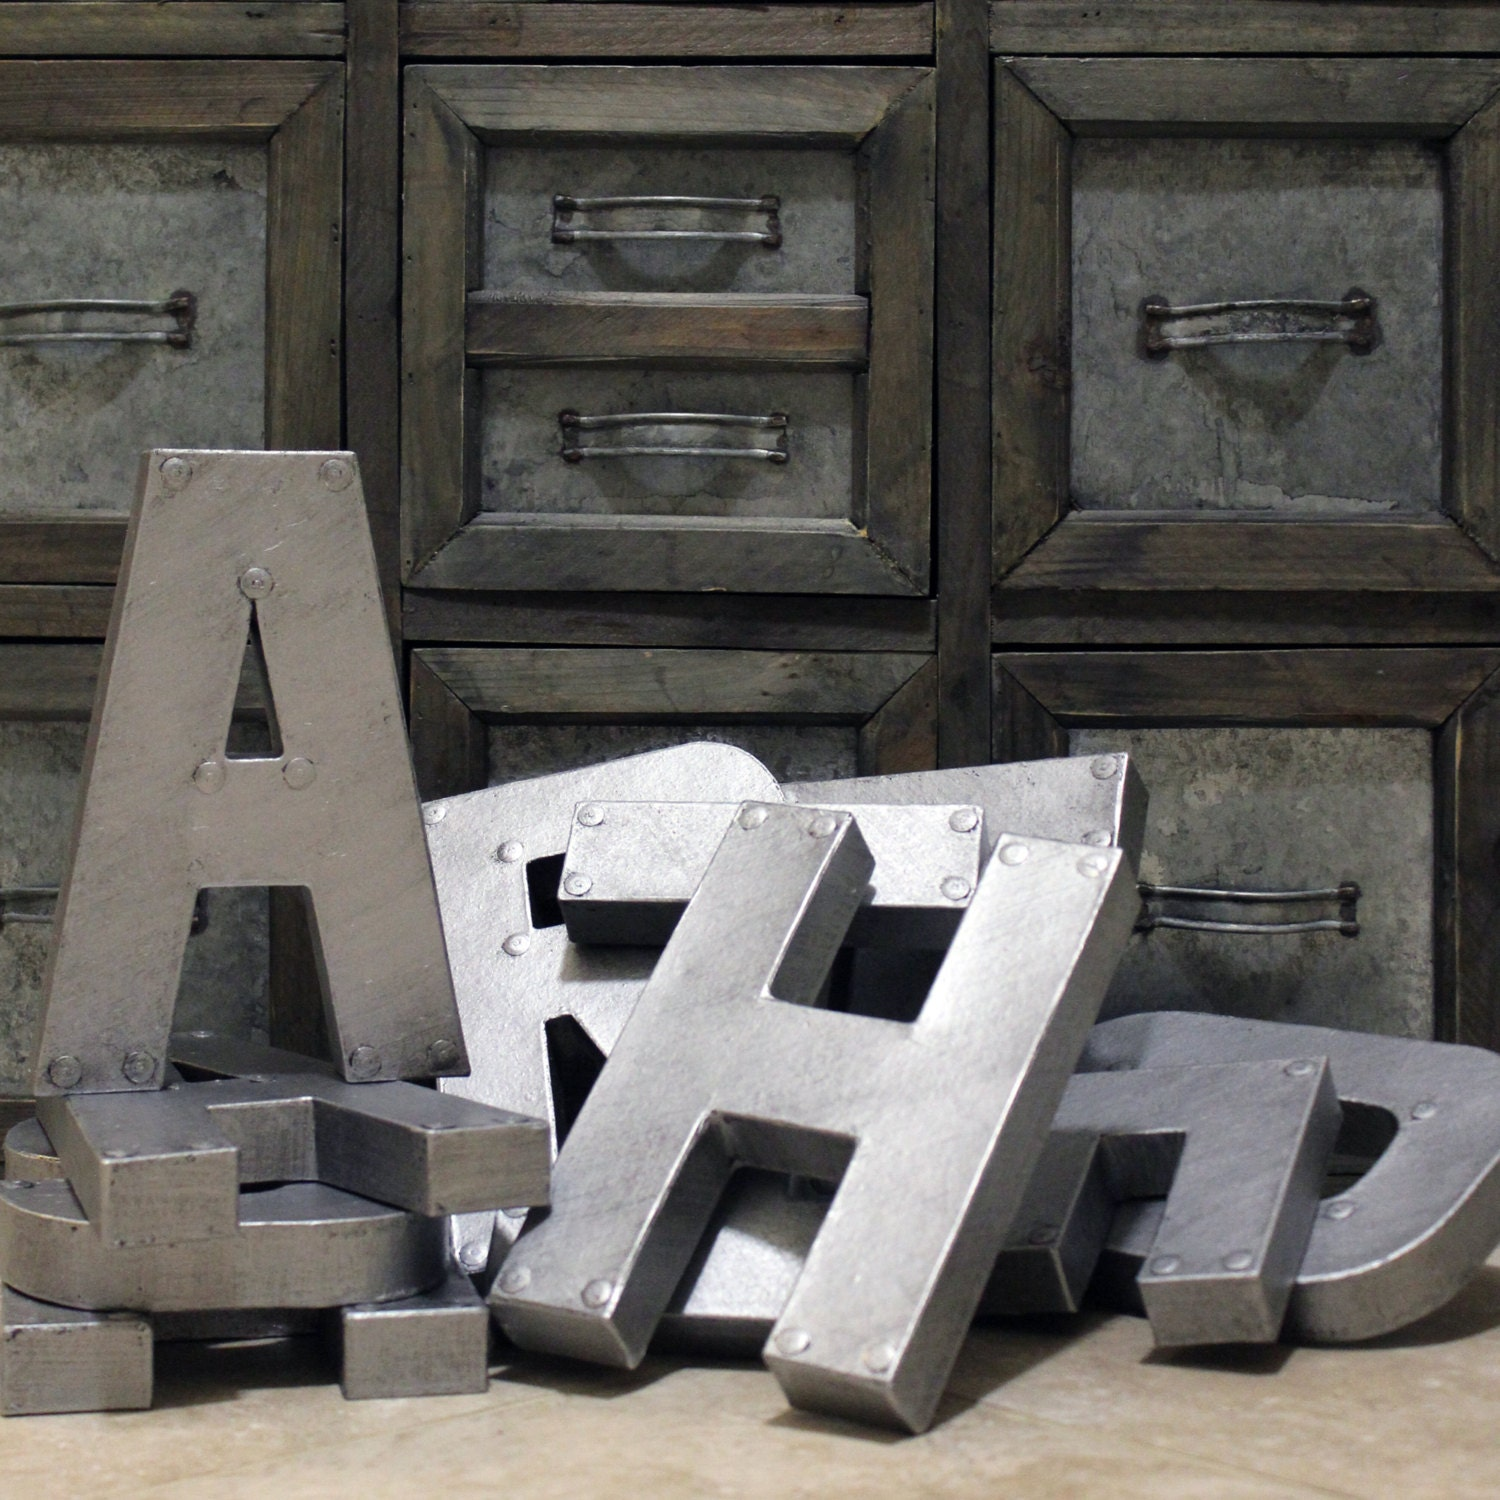 Giant Metal Letters For Wall Giant Metal Letters For Wall  Wall Plate Design Ideas